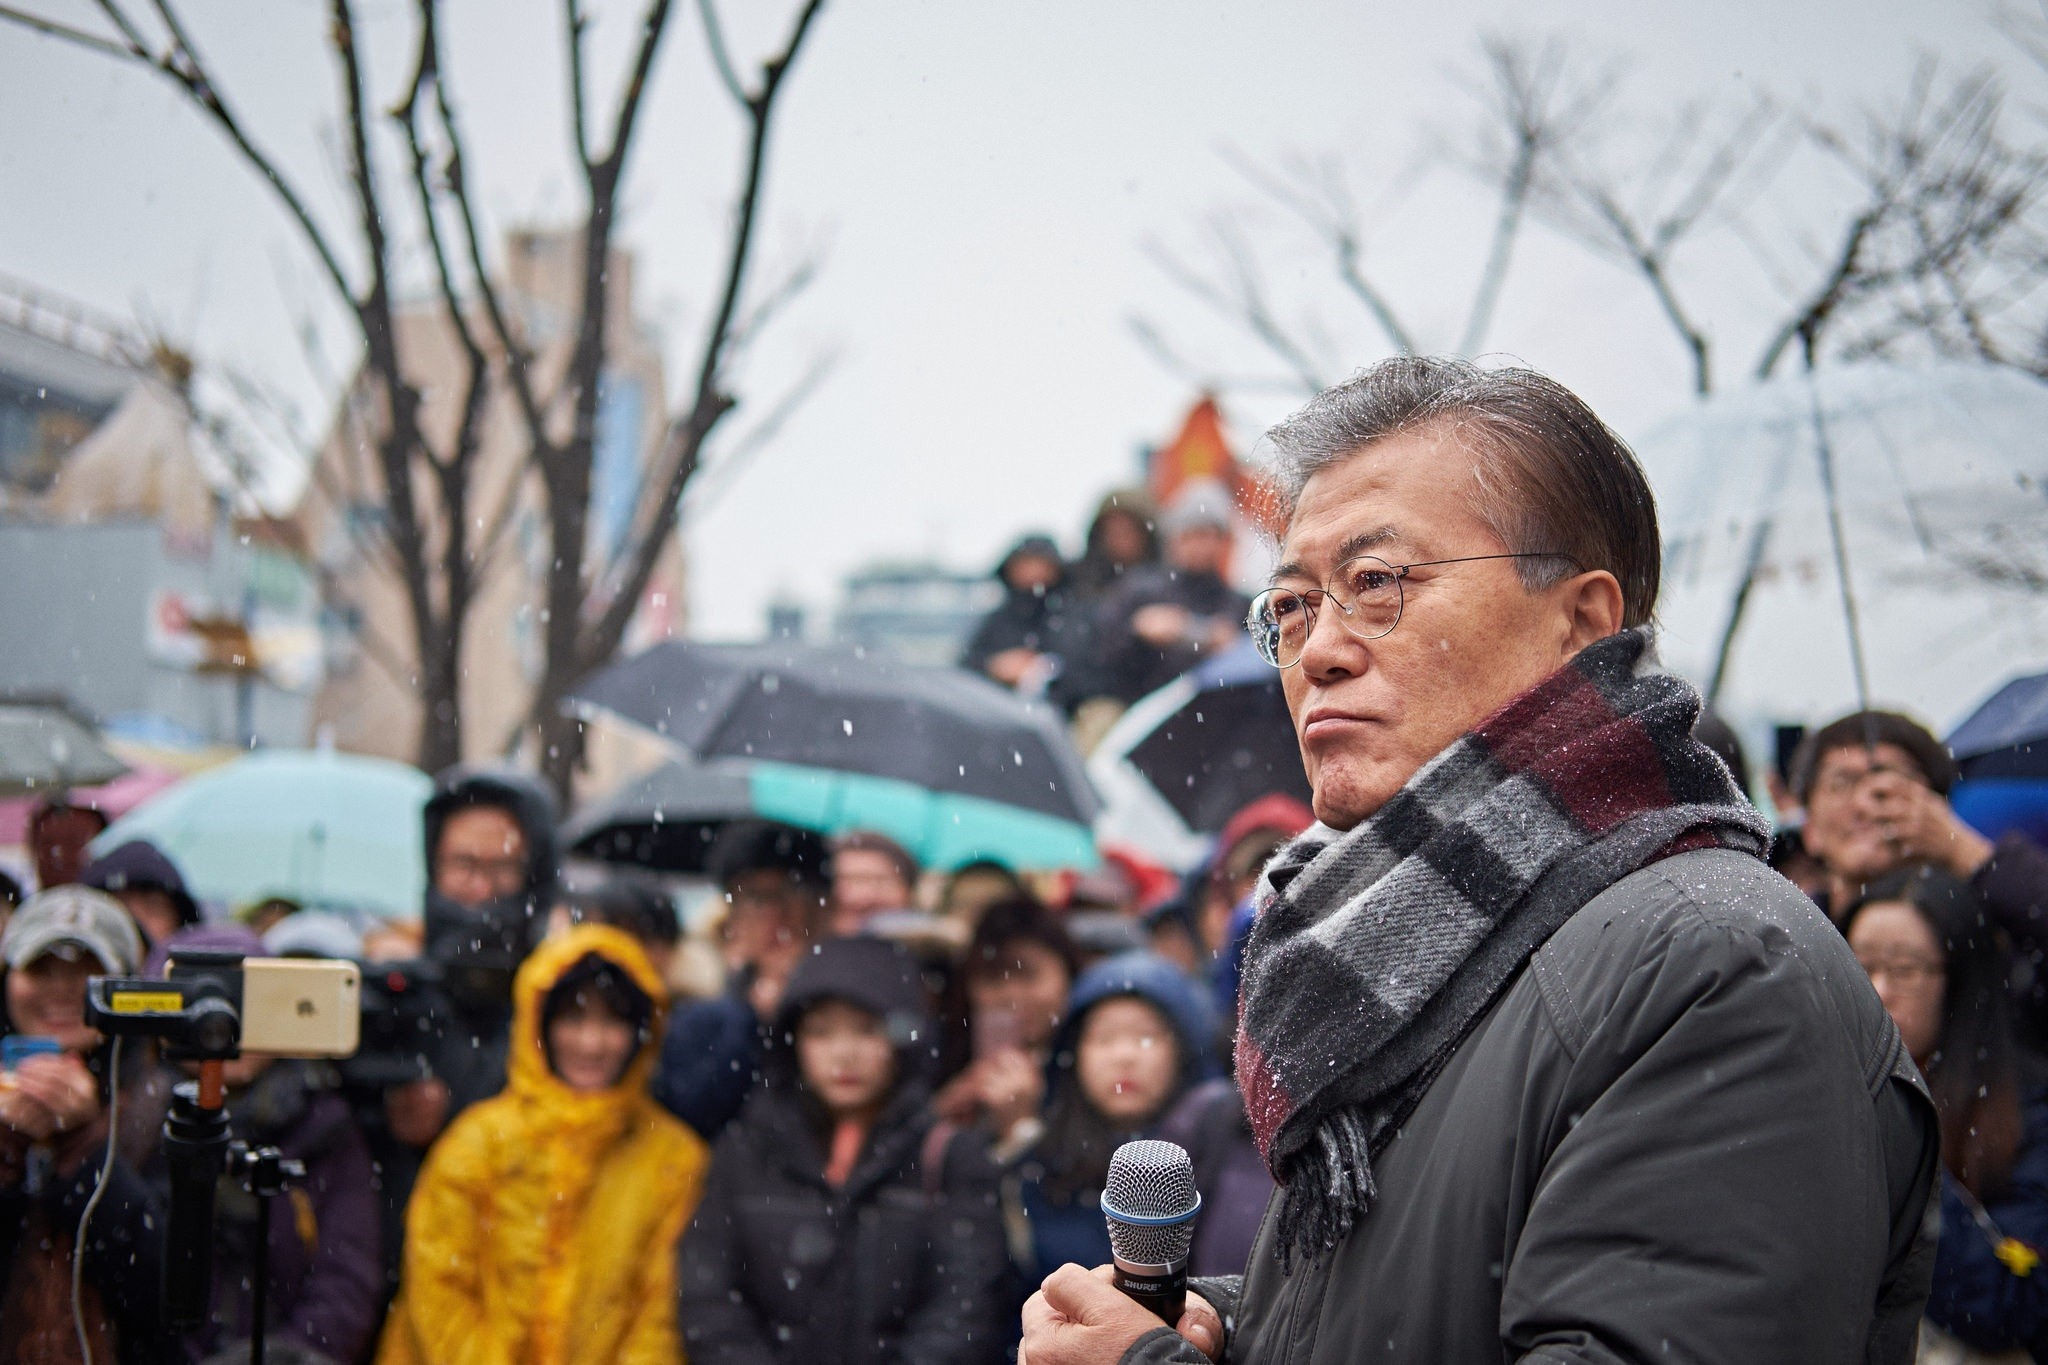 Moon Jae-in at a rally in Seoul, by Jee Su Na, via flickr.com, CC BY-NC-ND 2.0